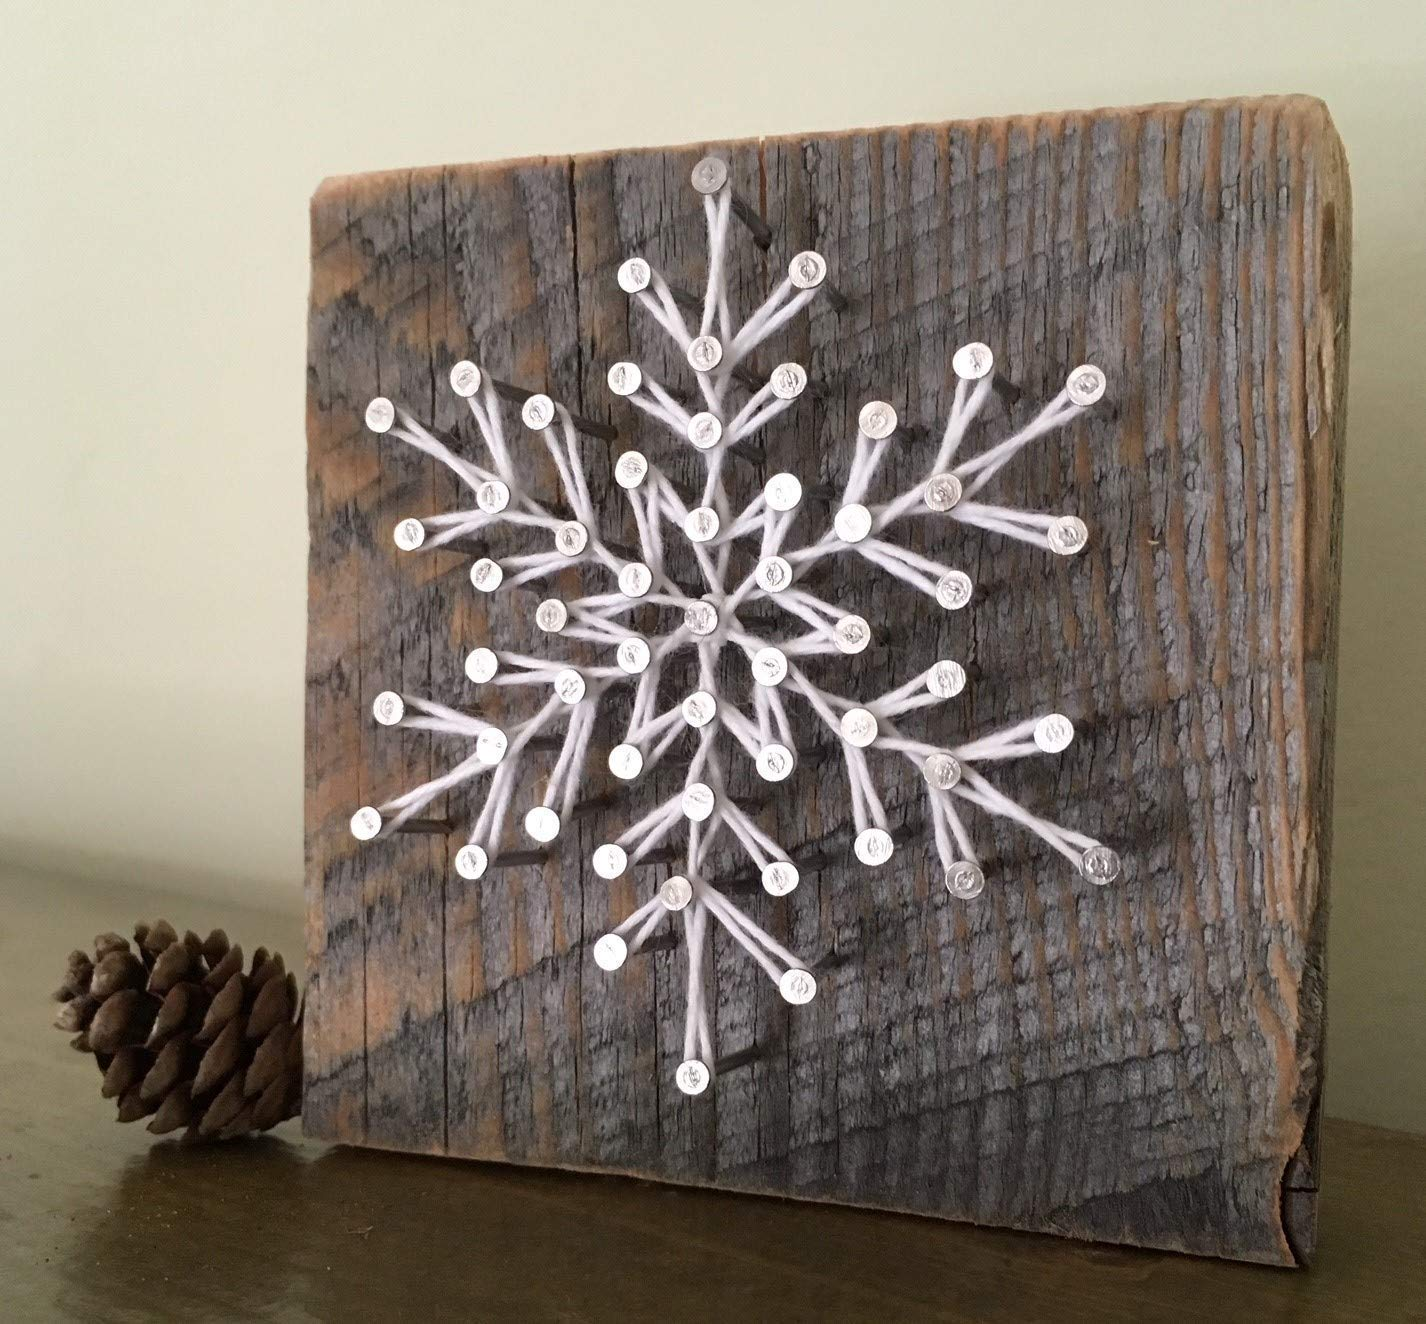 Sweet and small'Frosty' snowflake gifts. Rustic holiday string art A unique gift for Christmas, Hanukkah and winter weddings. Perfect for ski cabins. Made in Maine.